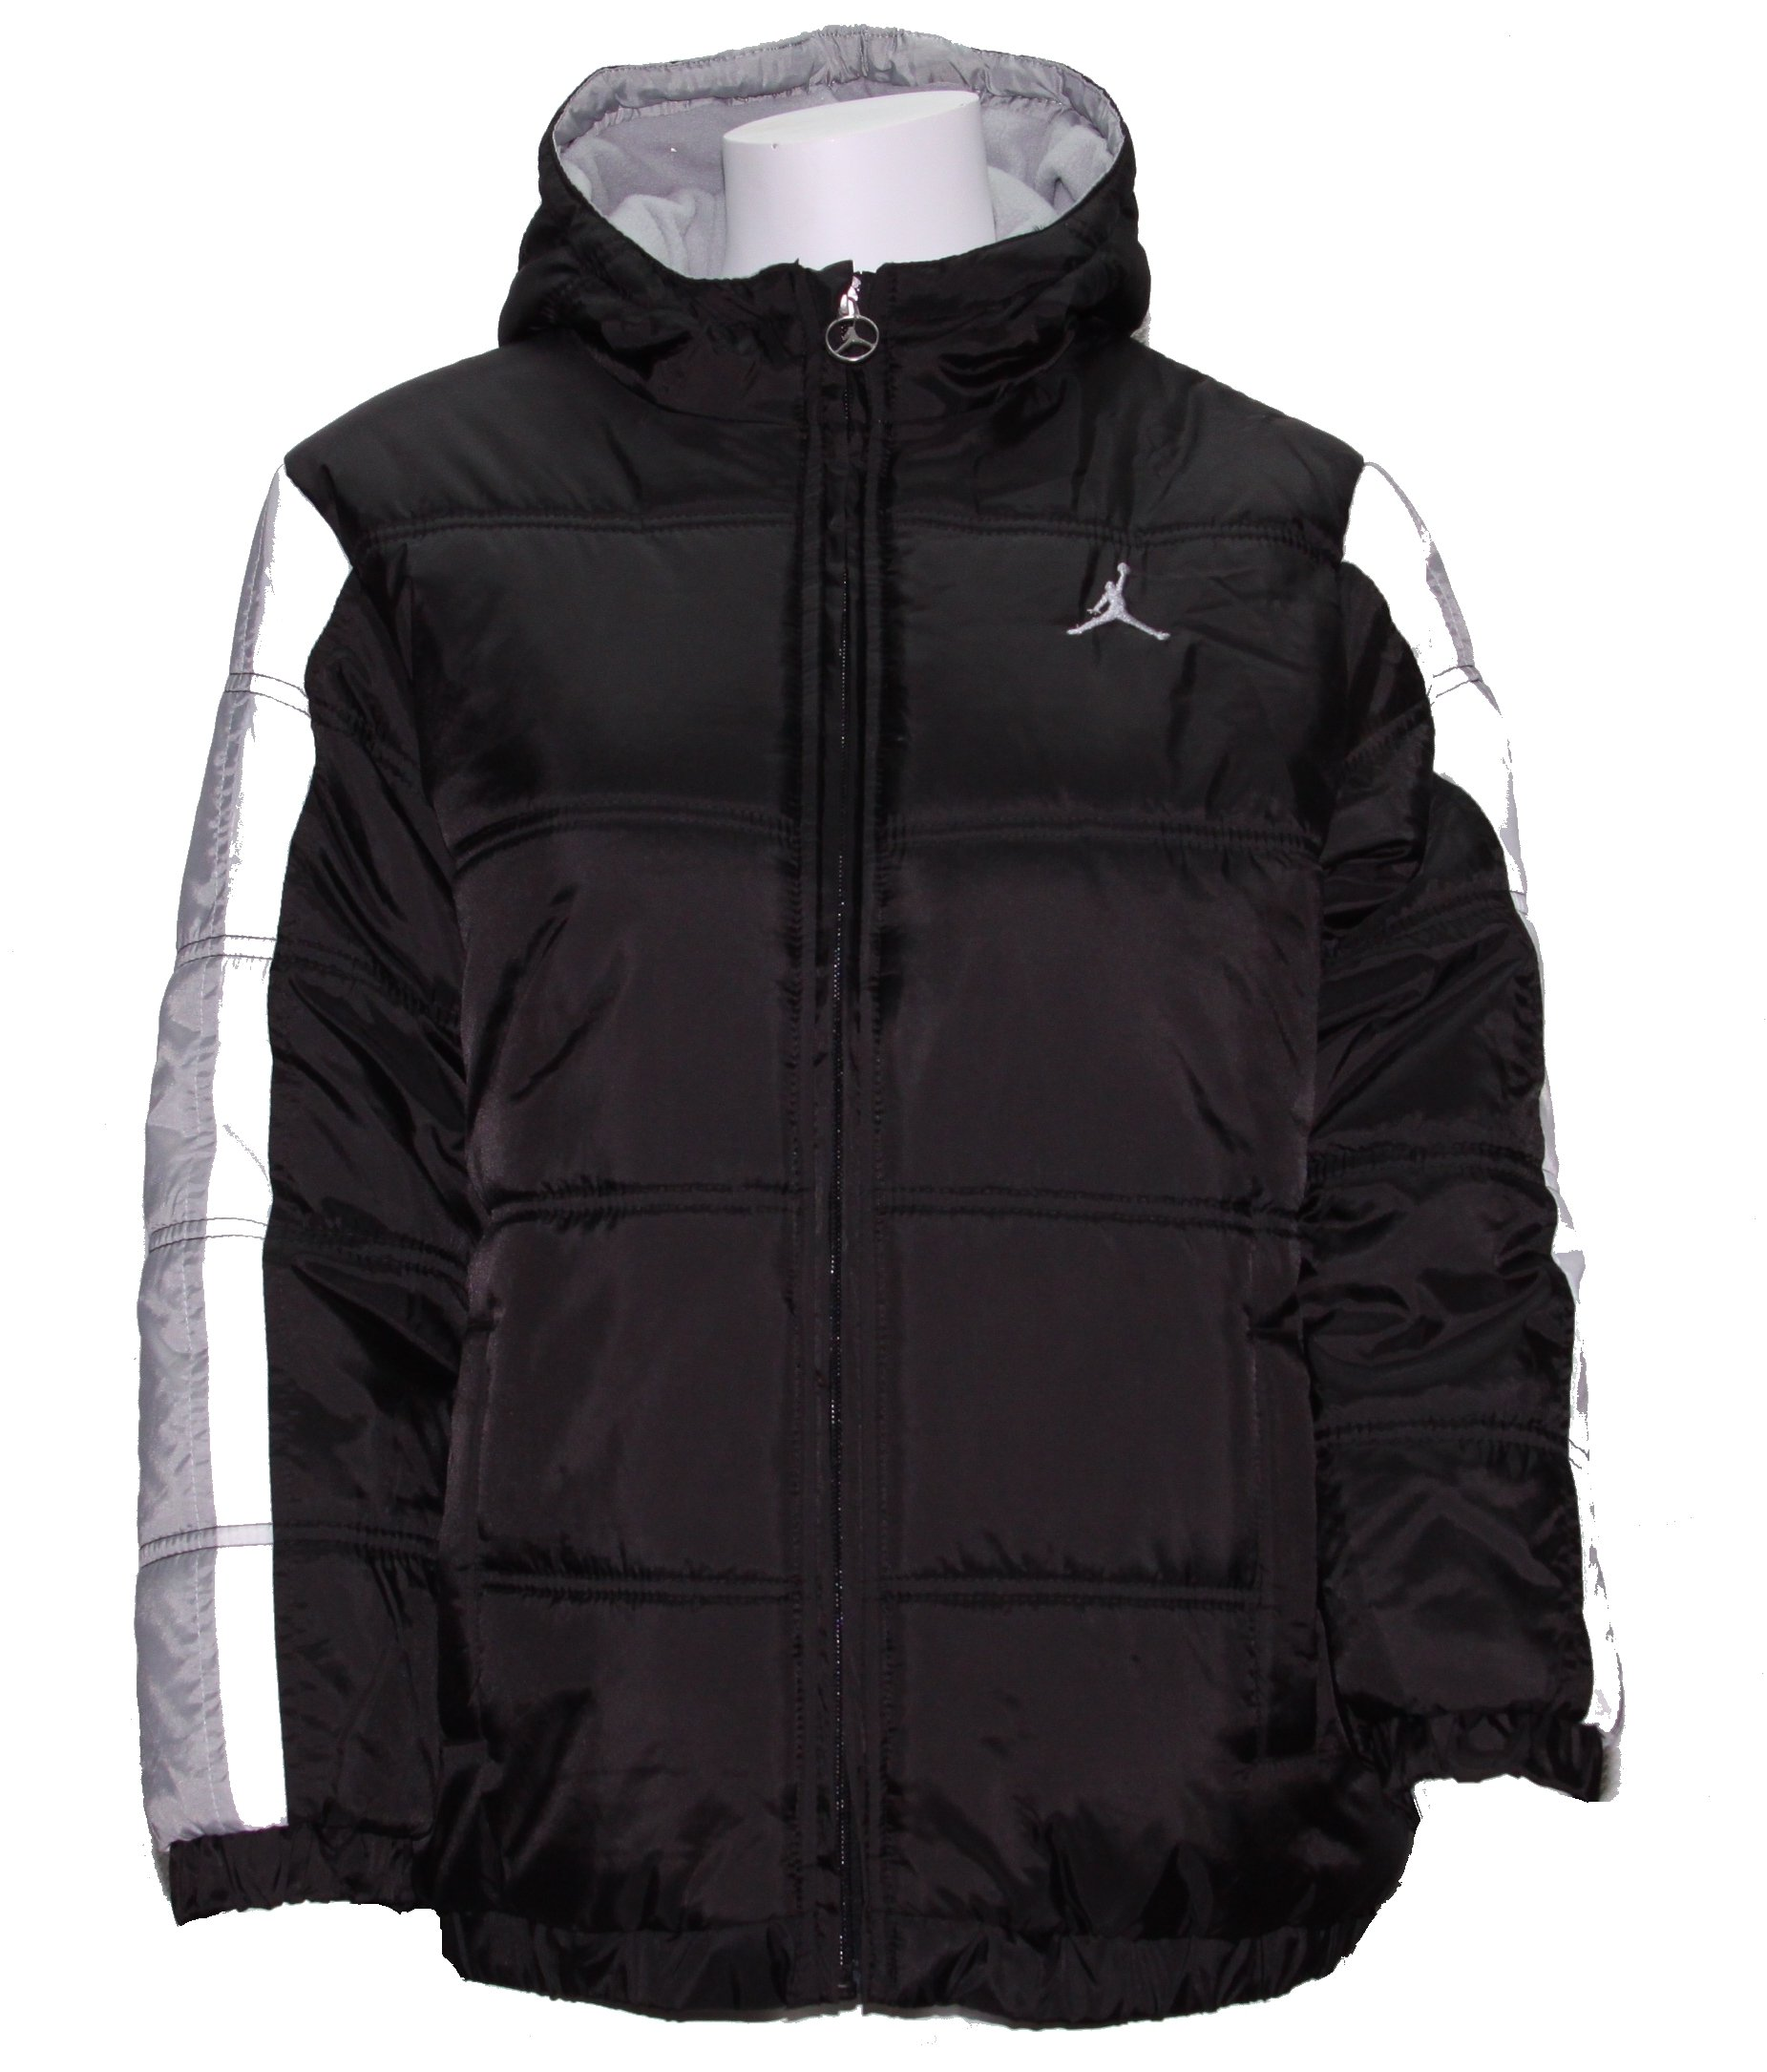 Nike Boy's Jordan Jumpman Hooded Puffy Jacket Black/Grey/White (Medium) by NIKE